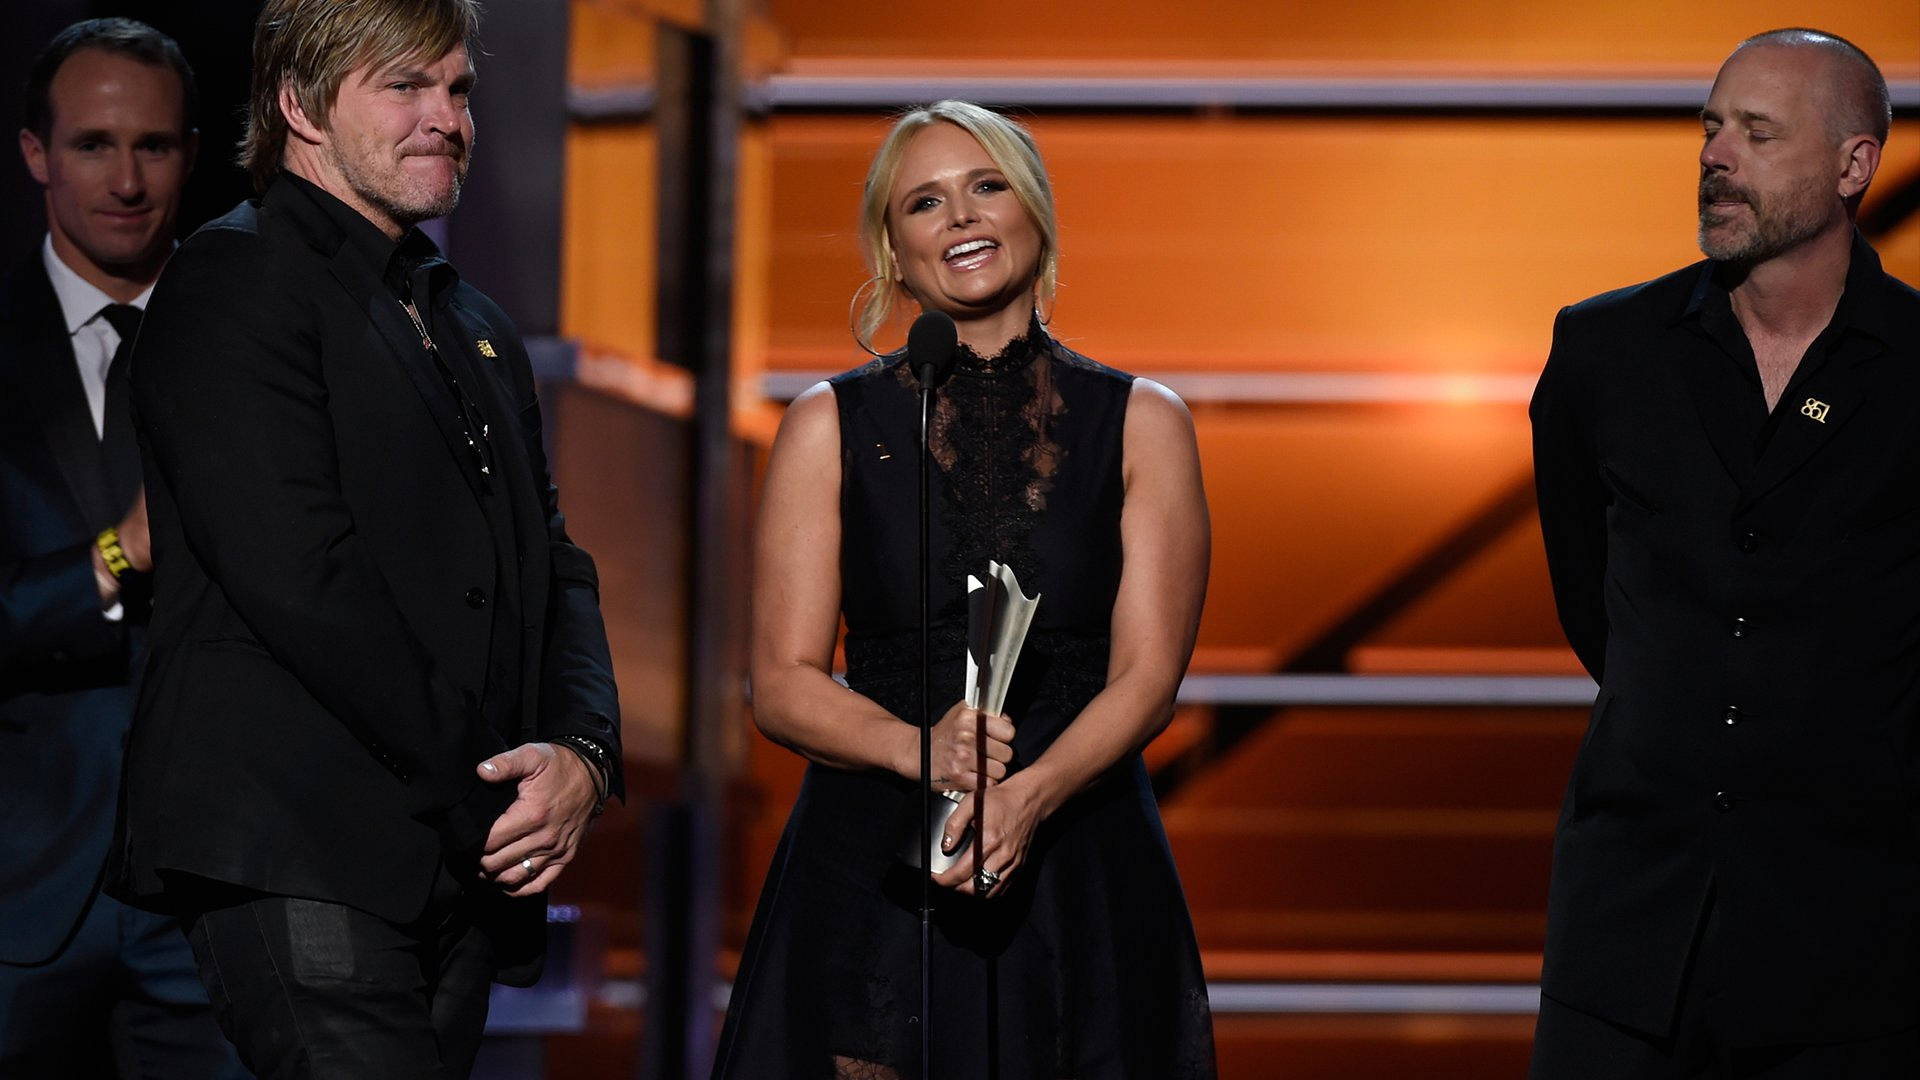 """Tin Man"" by Miranda Lambert wins Song of the Year at the 53rd ACM Awards."